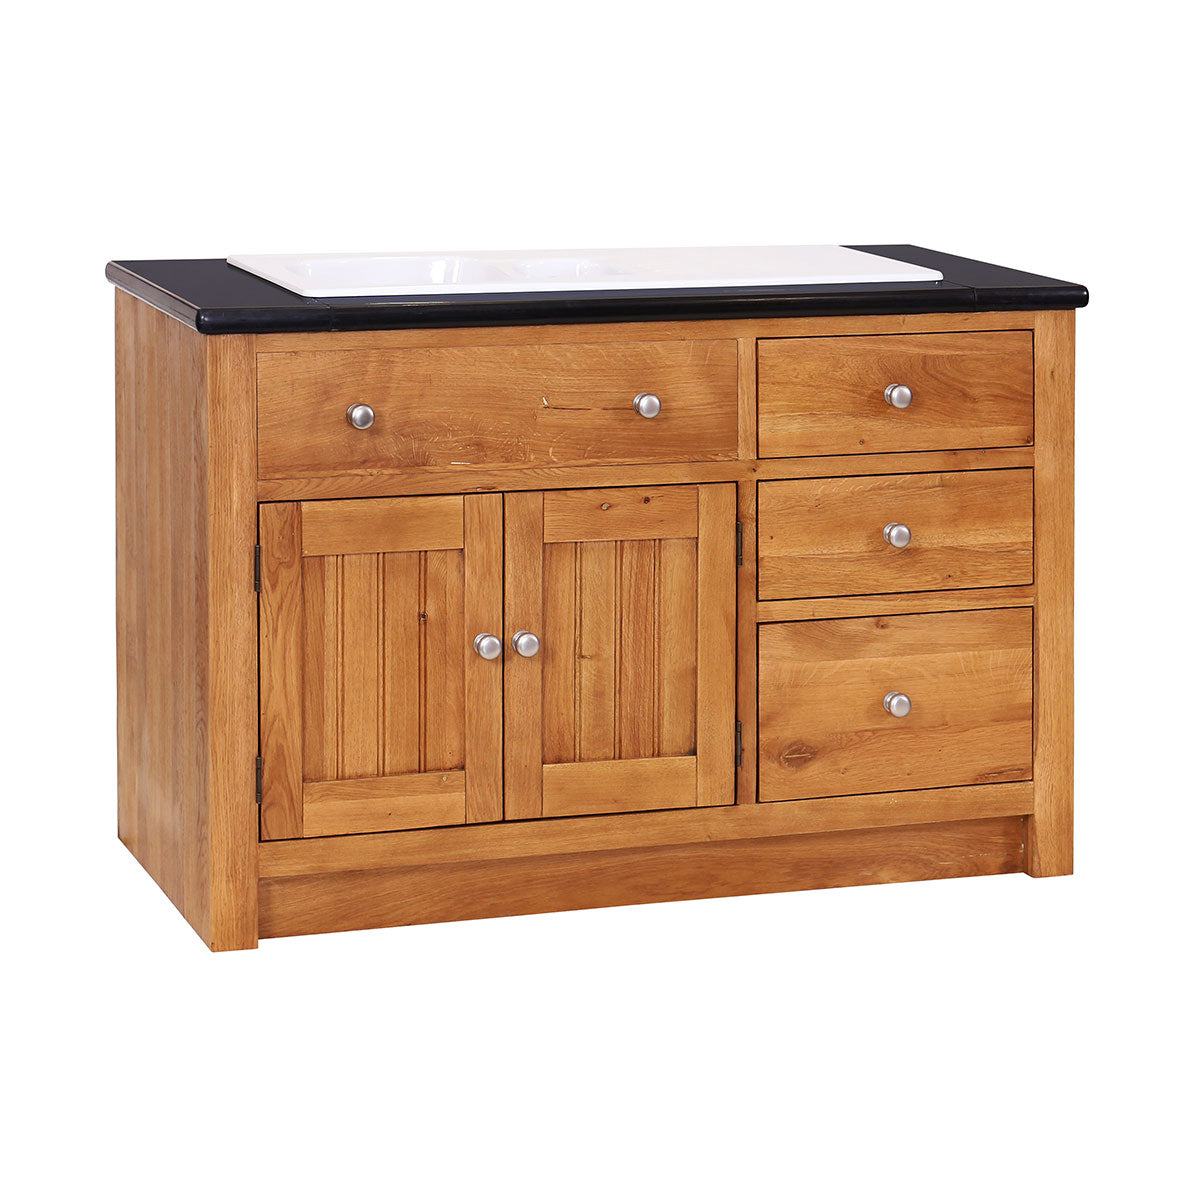 Left Hand Sink Unit with 3 Drawers & 2 Doors ( NO GRANITE TOP)